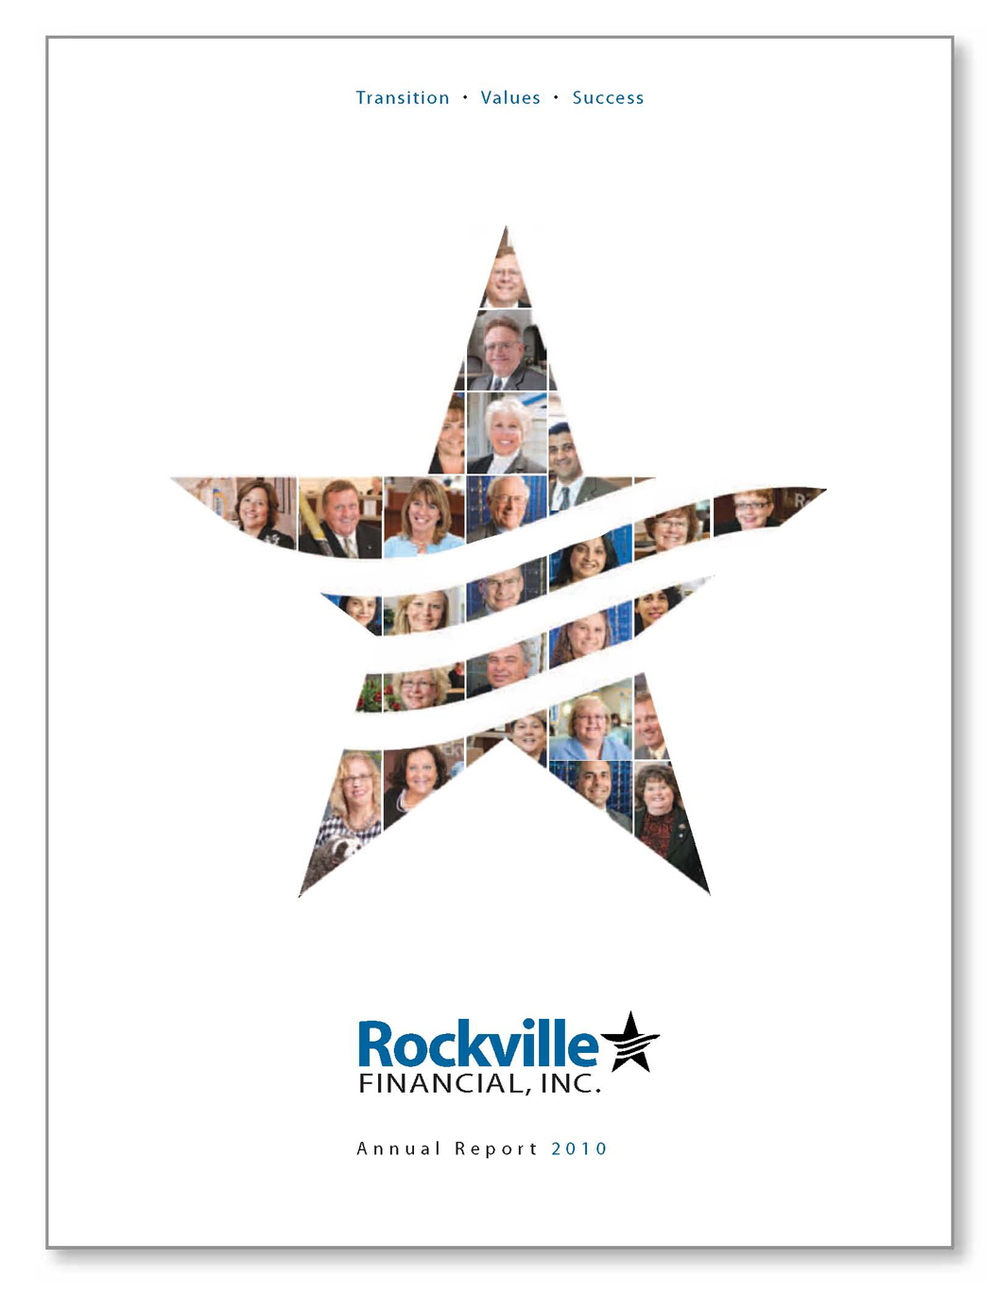 Rockvilleannualreport.jpg